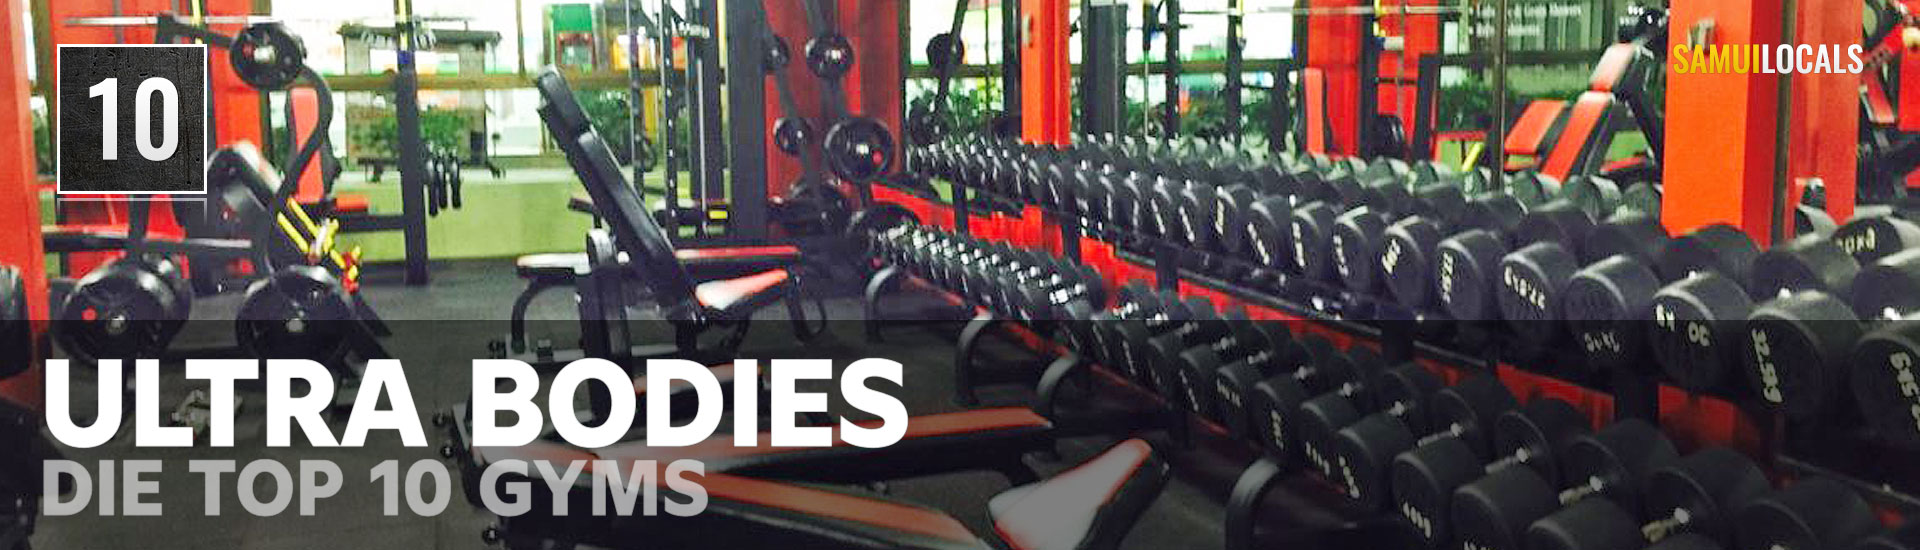 Top_10_gyms_ultra_bodies